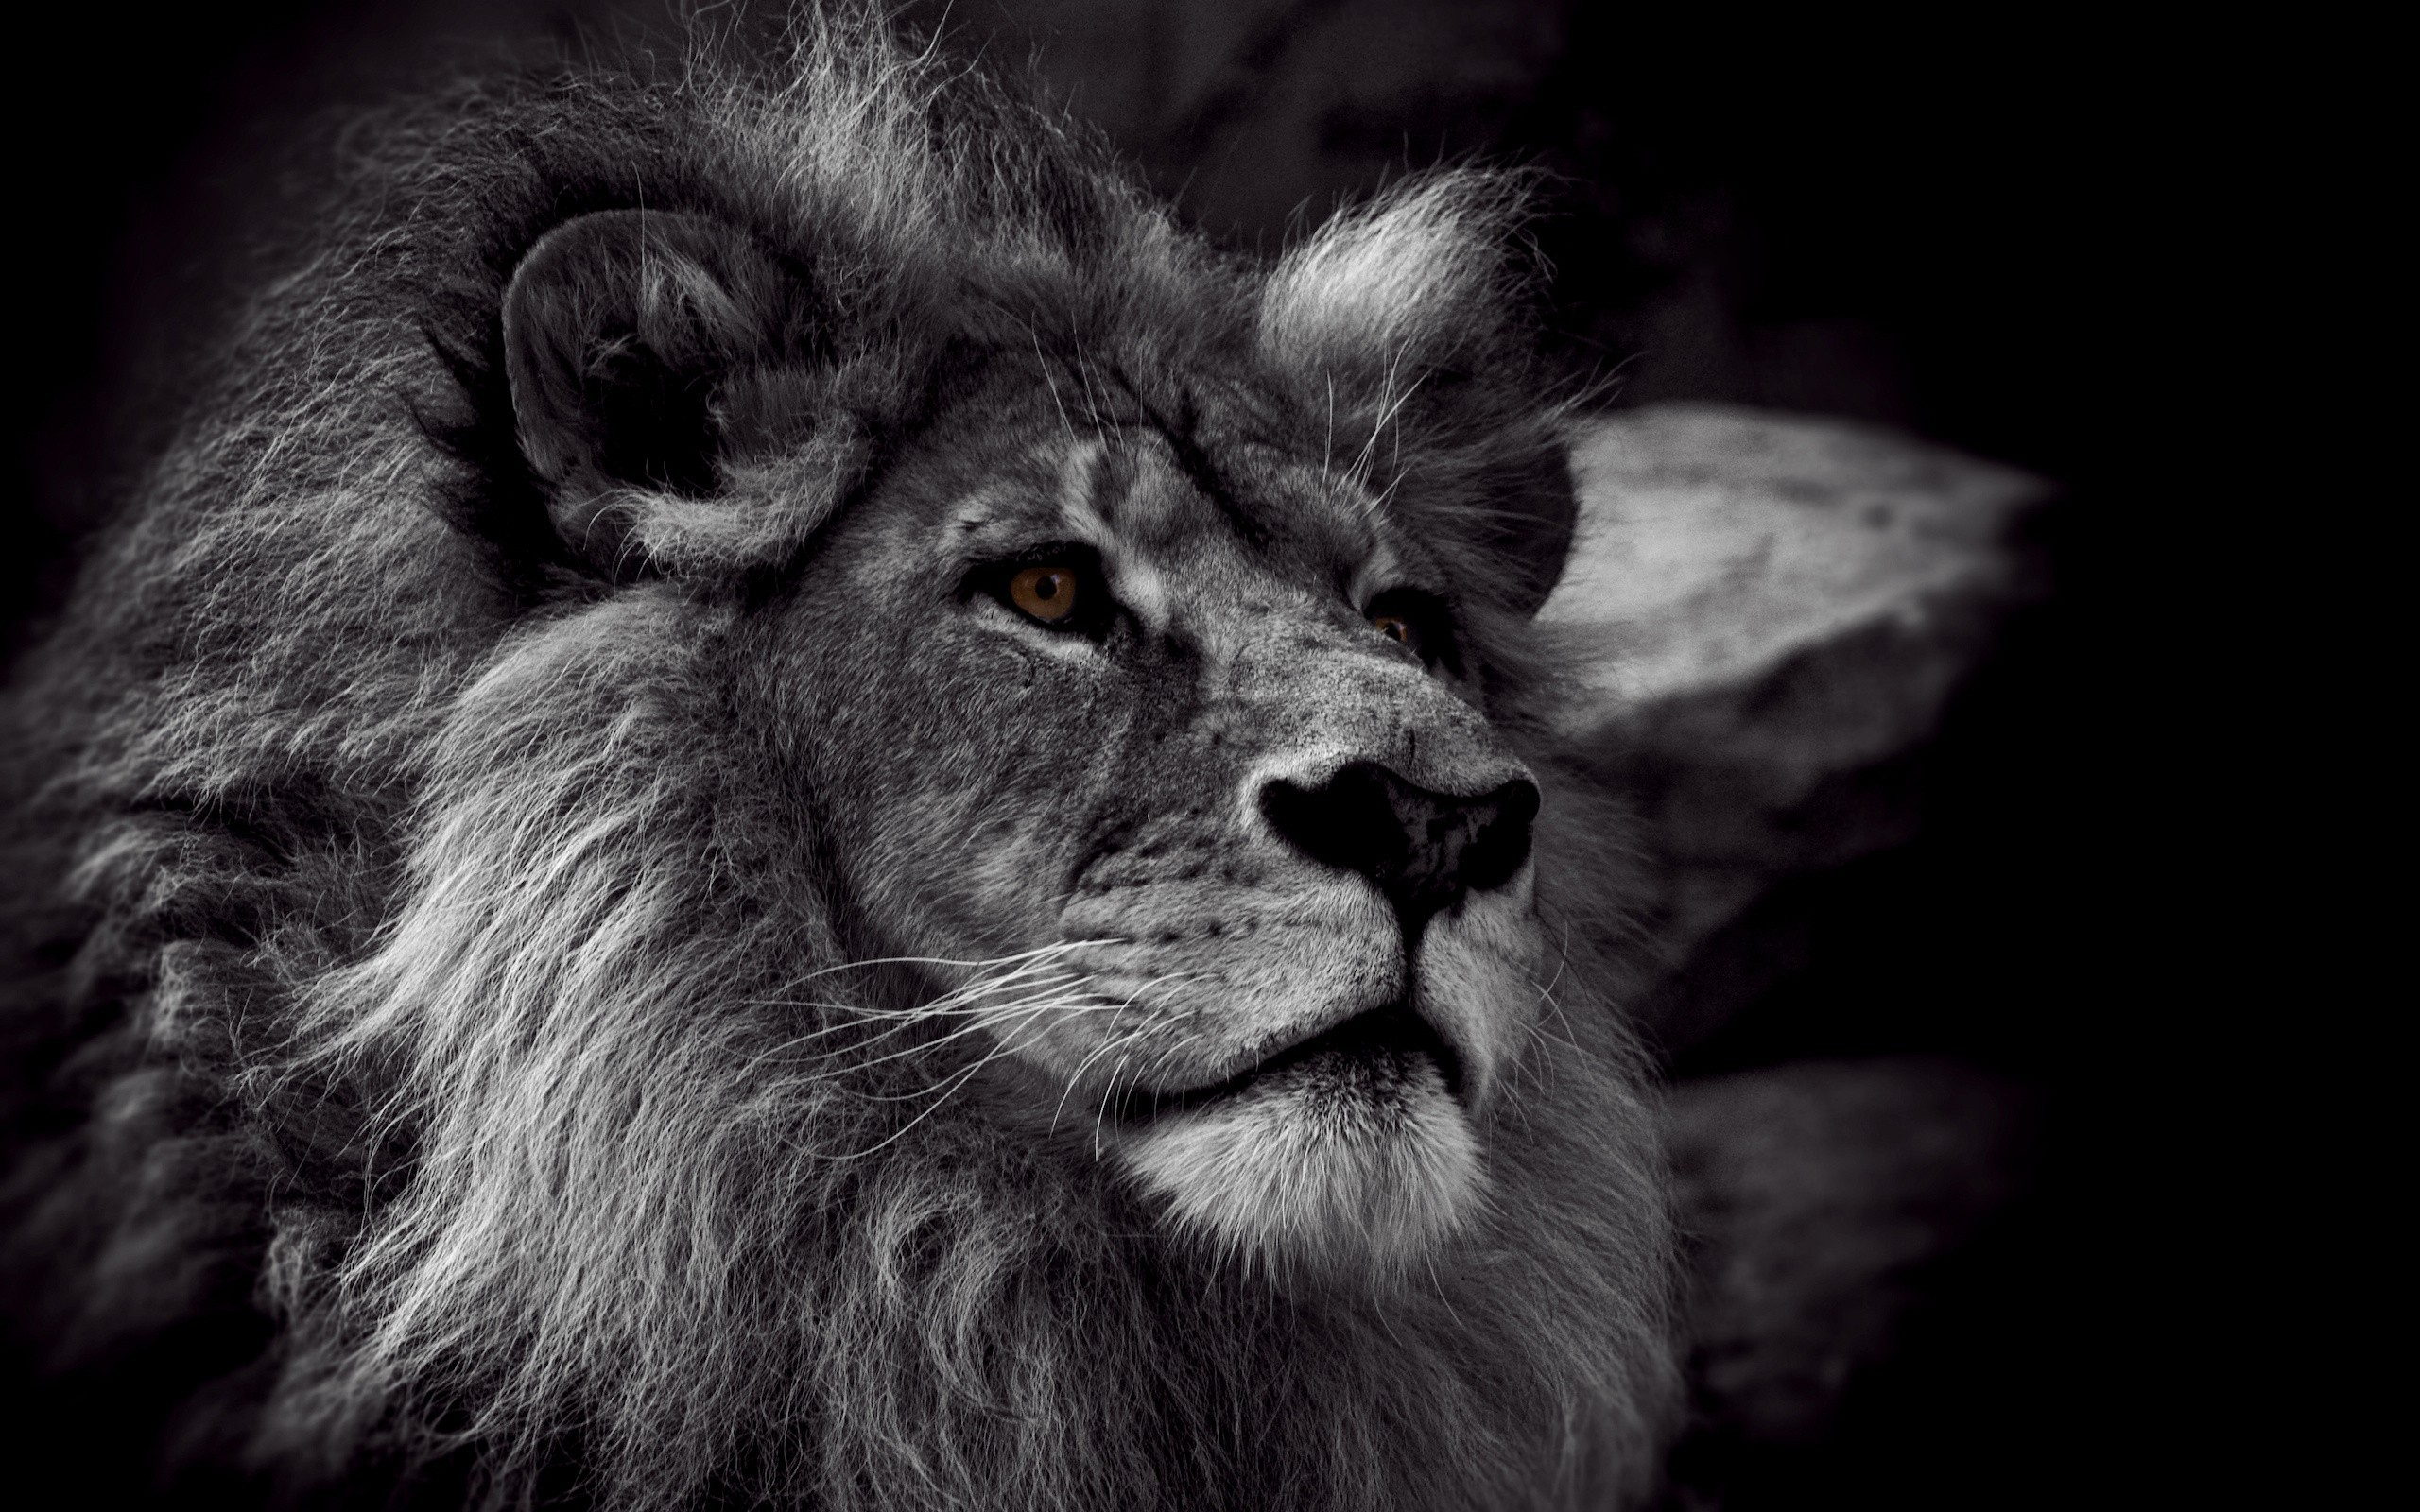 Lion Black And White Wallpaper Picture